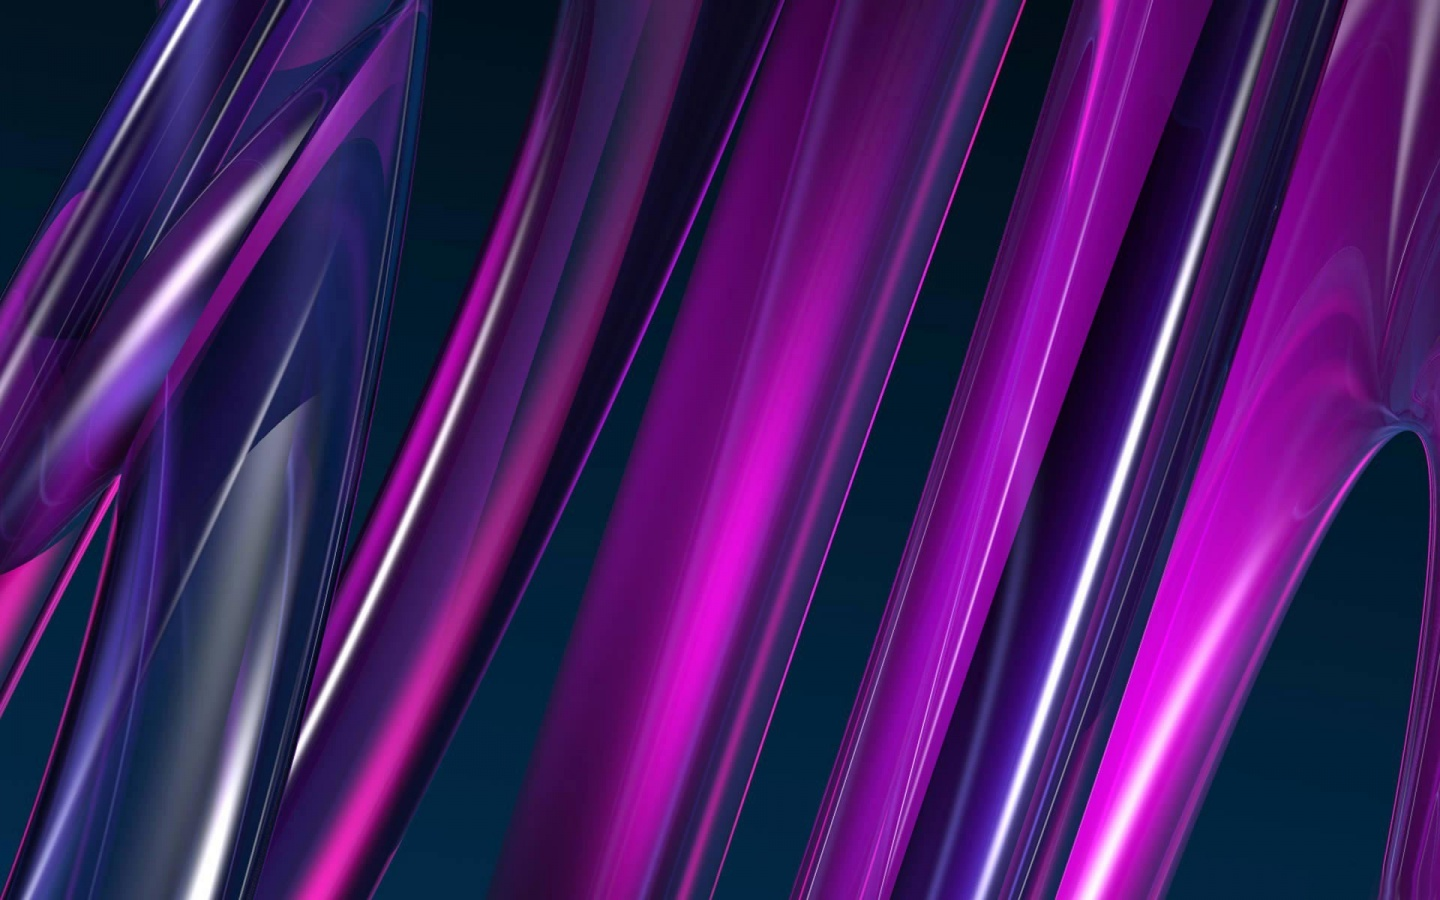 1440x900 Purple, rainbow